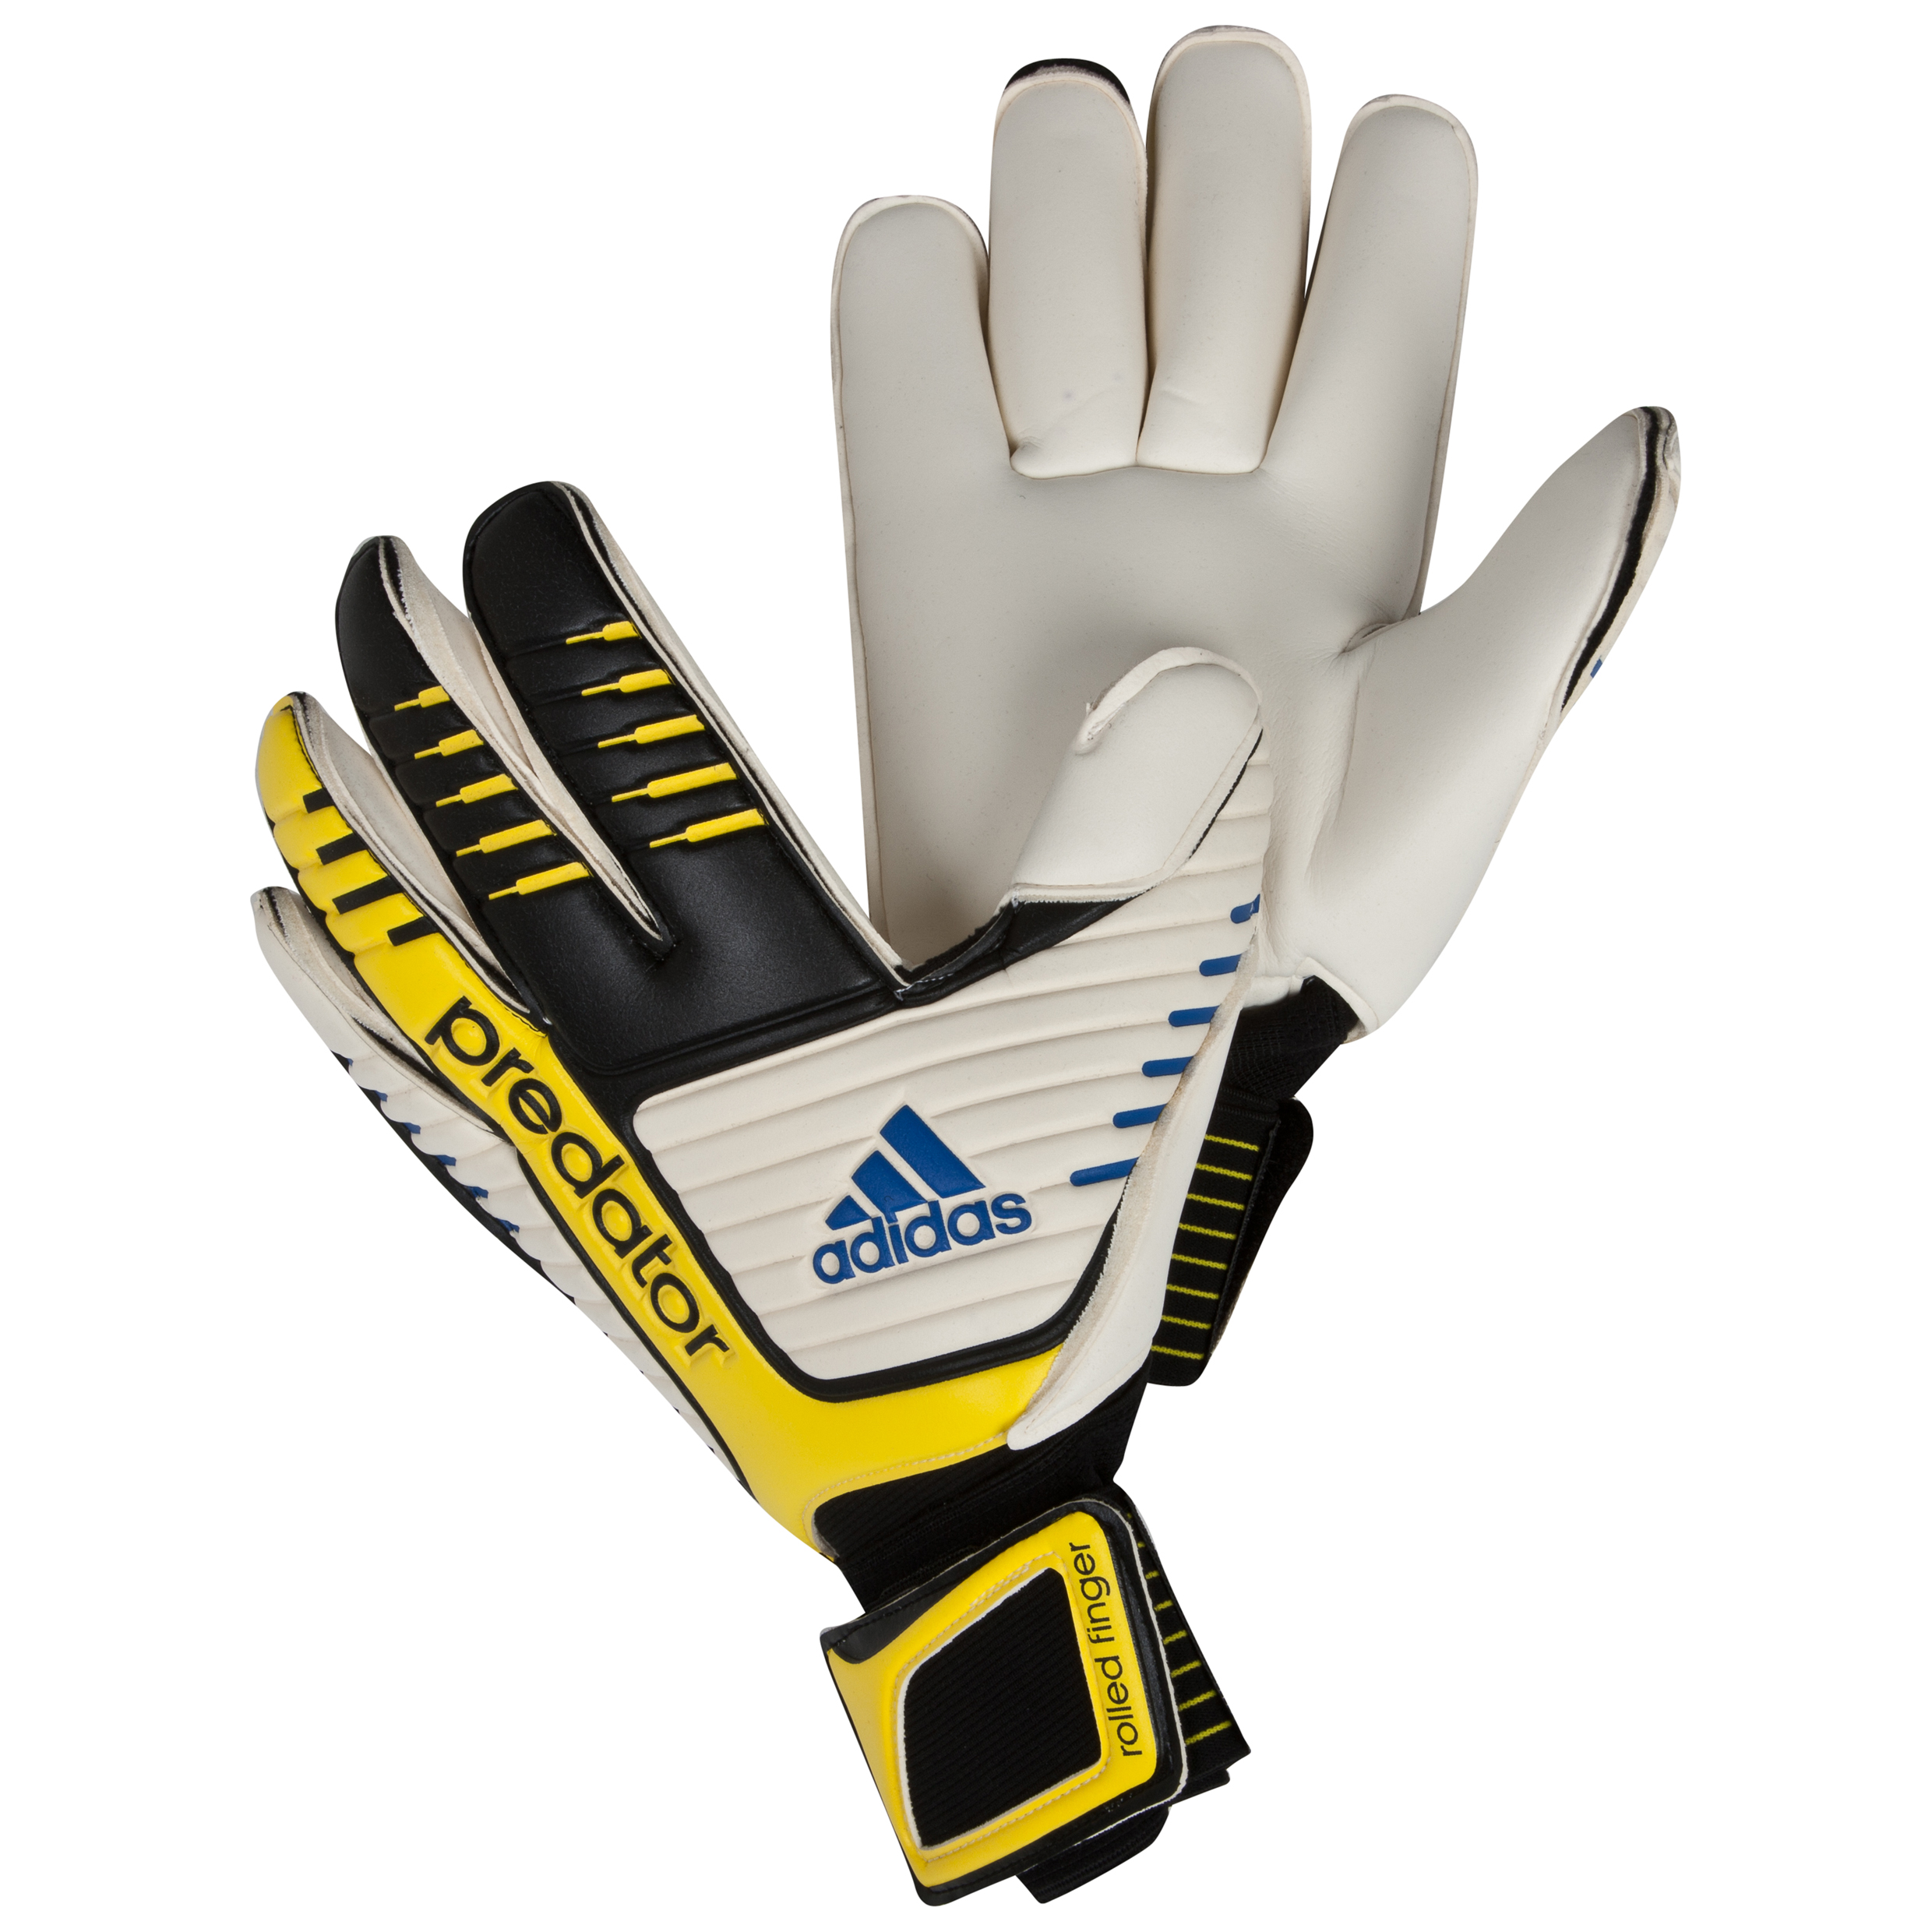 adidas Pred Roll Finger Goalkeeper Gloves - Black/White/Vivid Yellow/Prime Blue